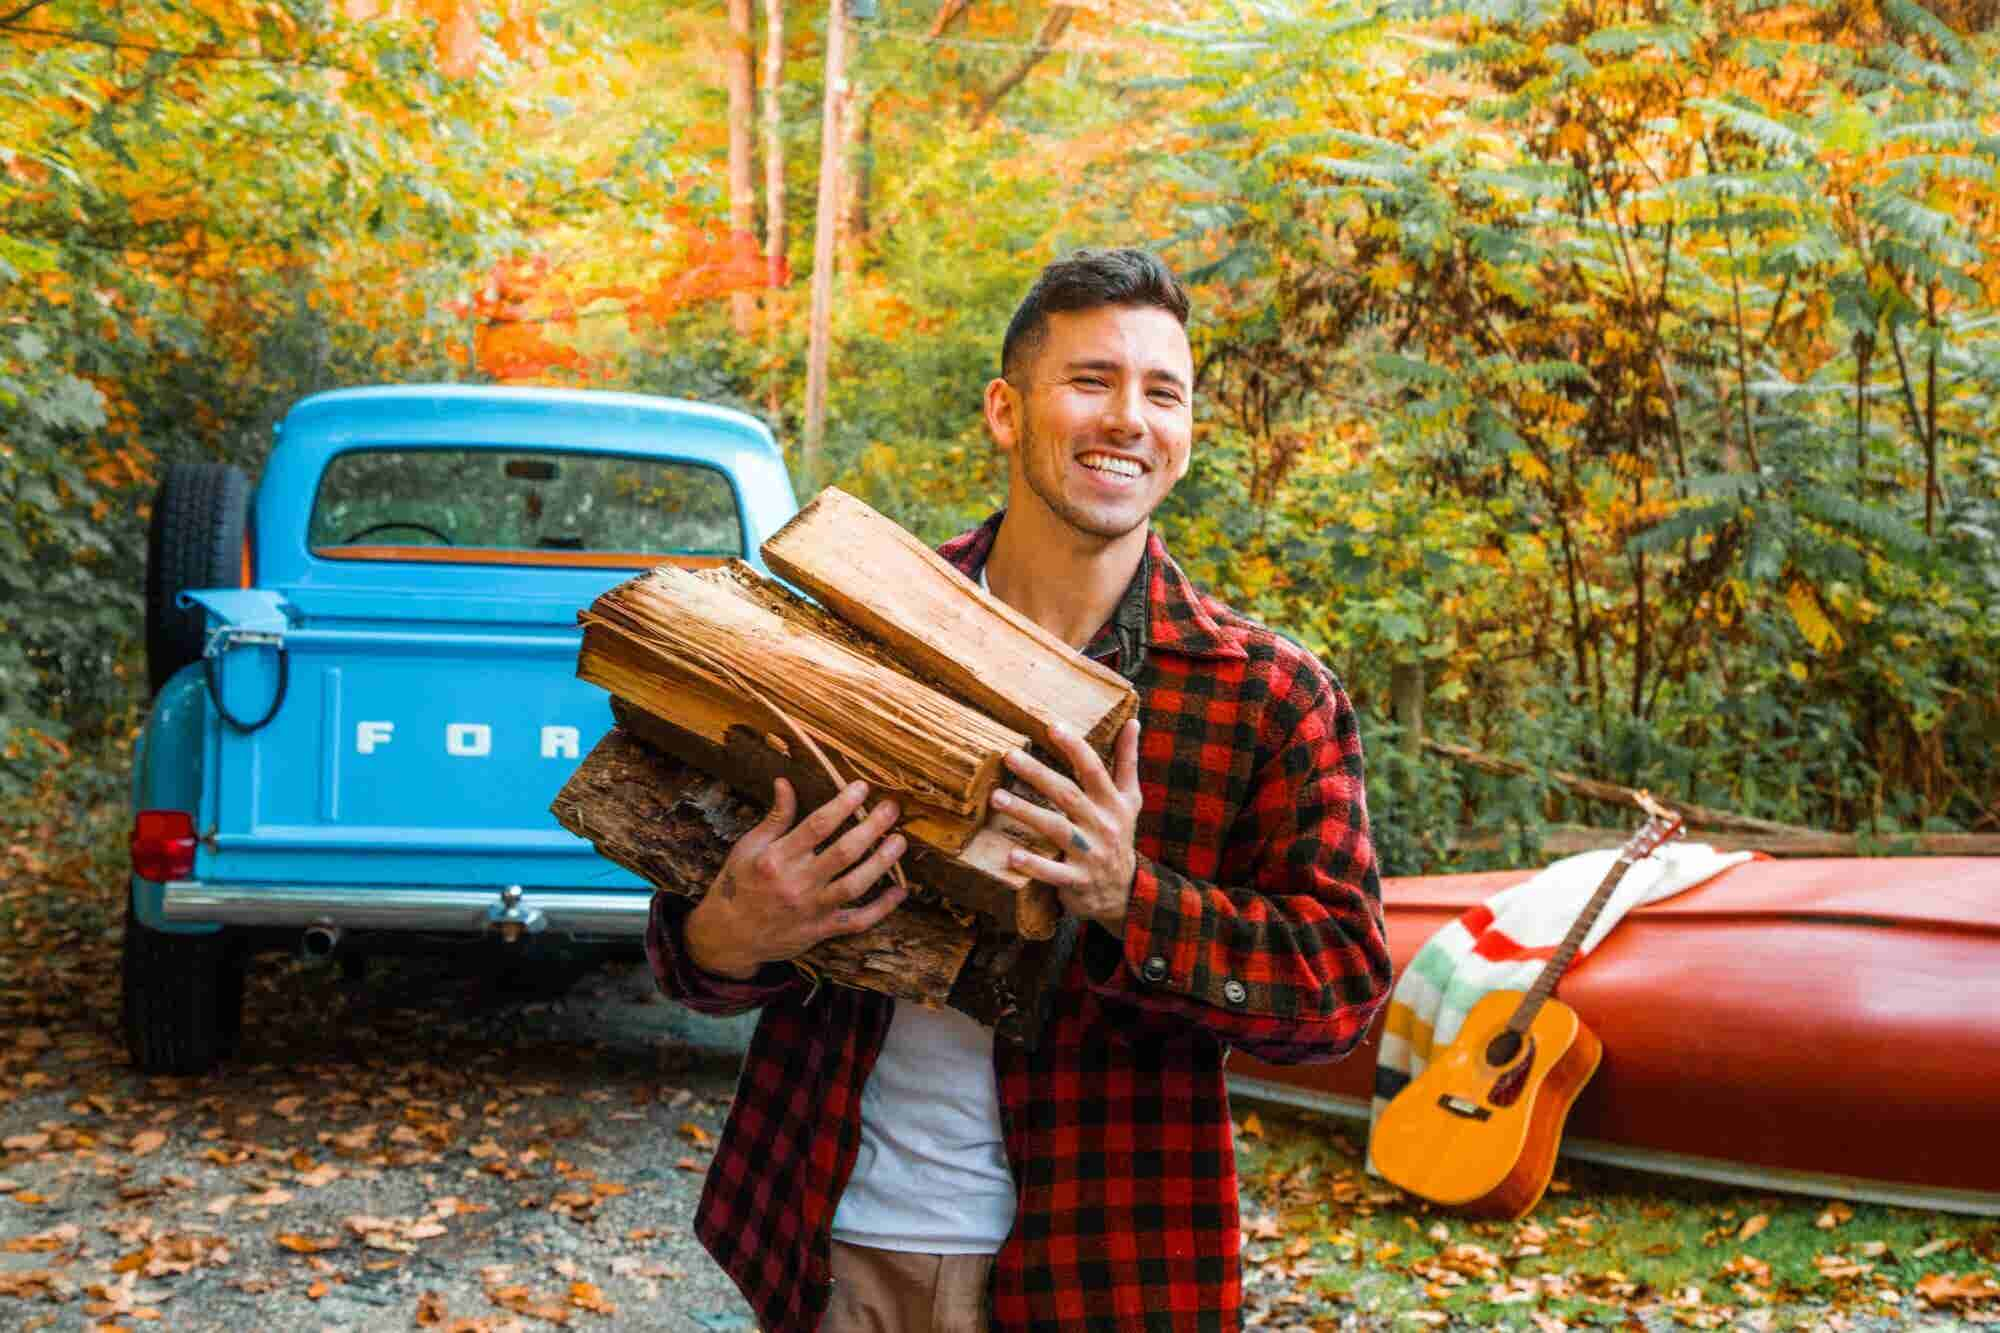 This Instagram Photographer Snaps Gorgeous Photos of Cozy Cabins and Fall Foliage. He Also Charges $5,000 Per Post.